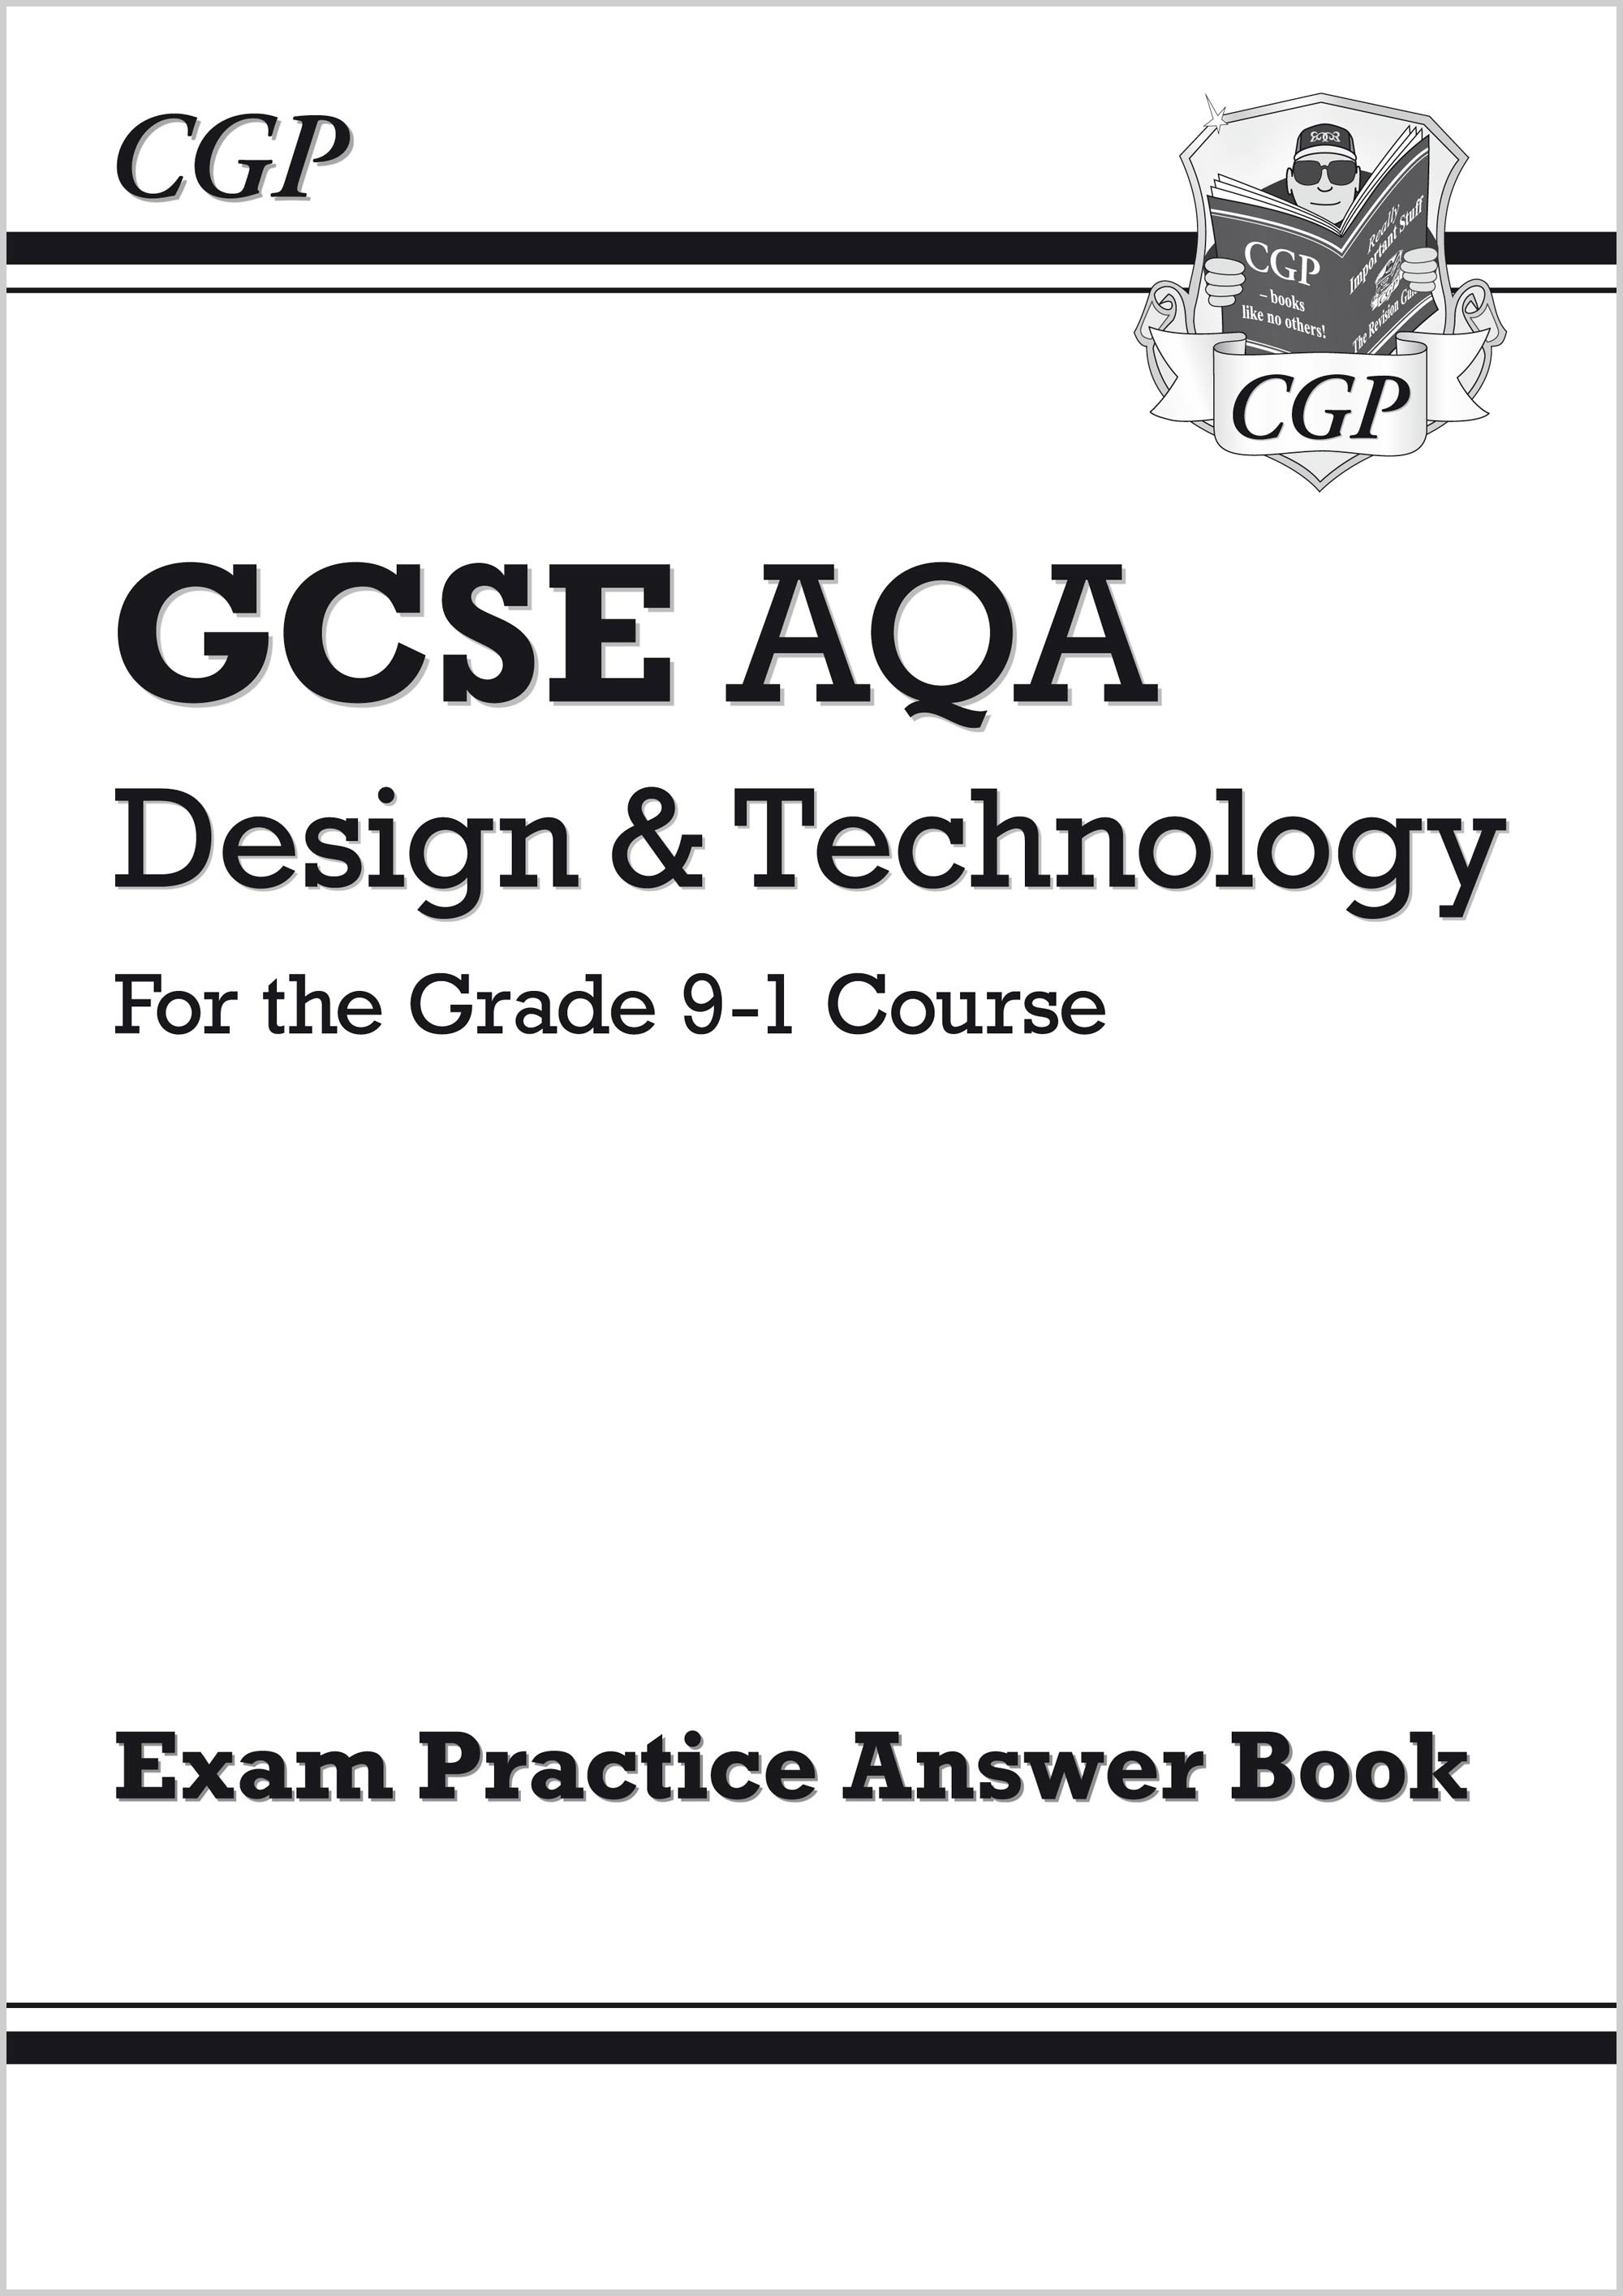 TAQA41 - Grade 9-1 GCSE Design & Technology AQA Answers (for Exam Practice Workbook)